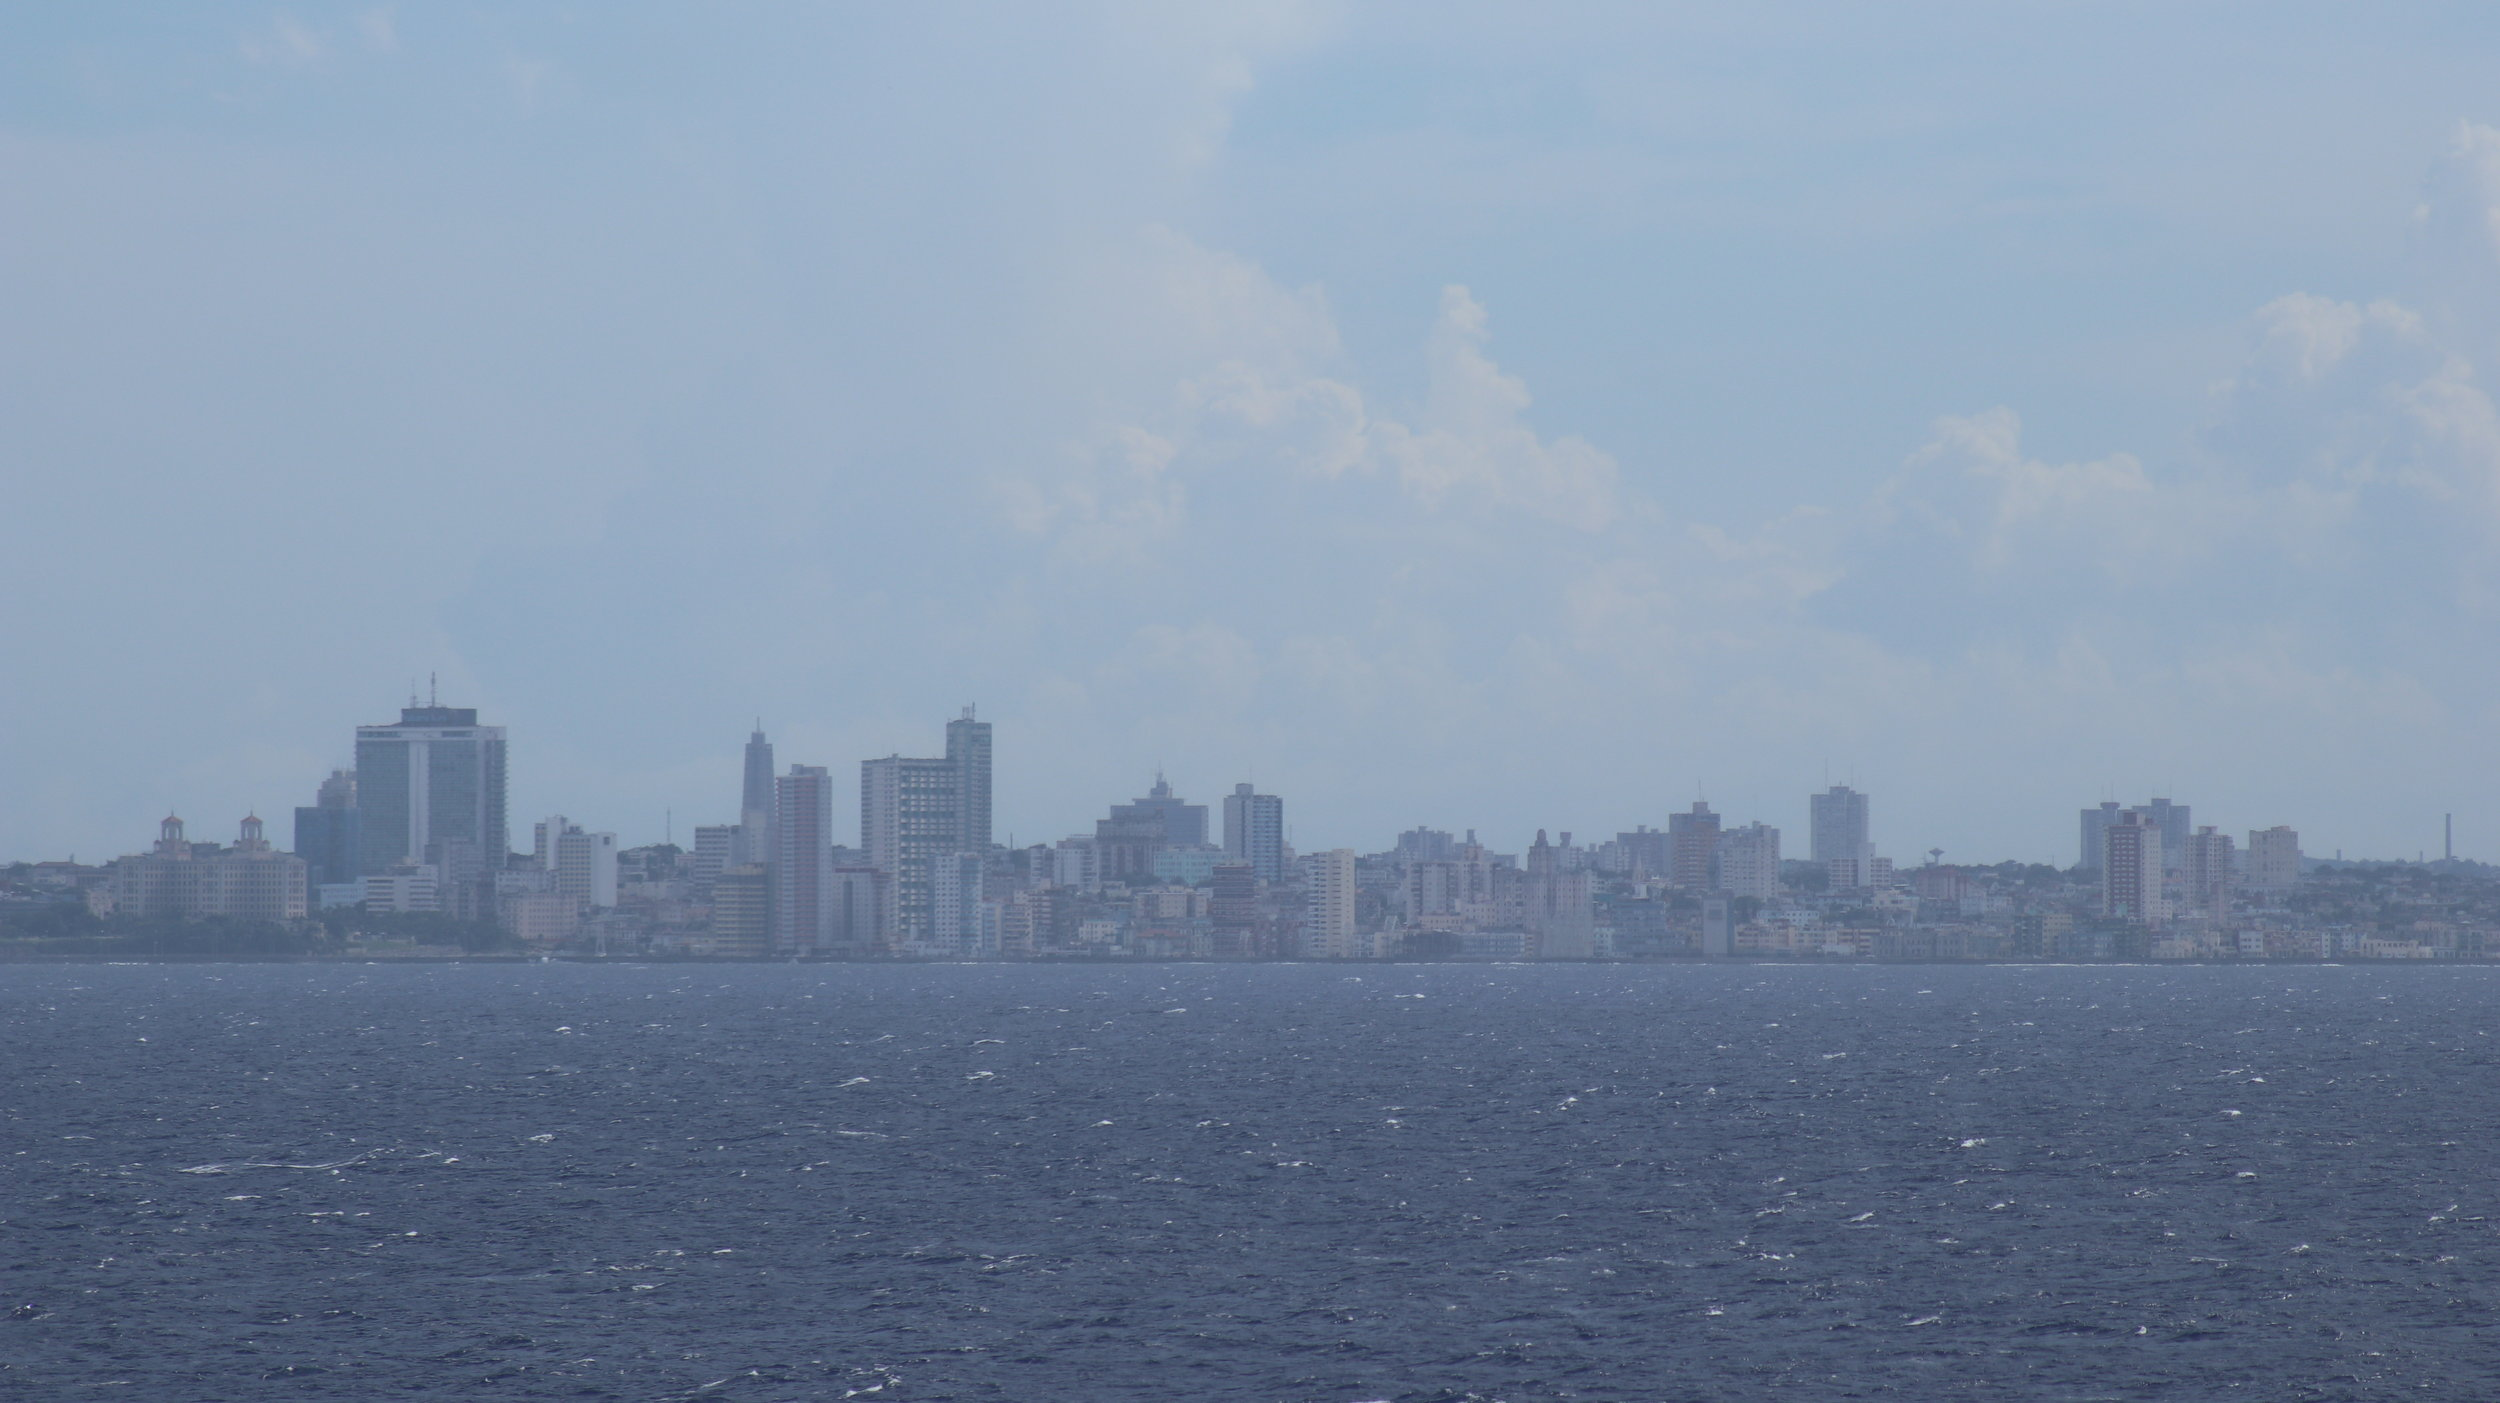 Havana is surprisingly more built up than we expected.